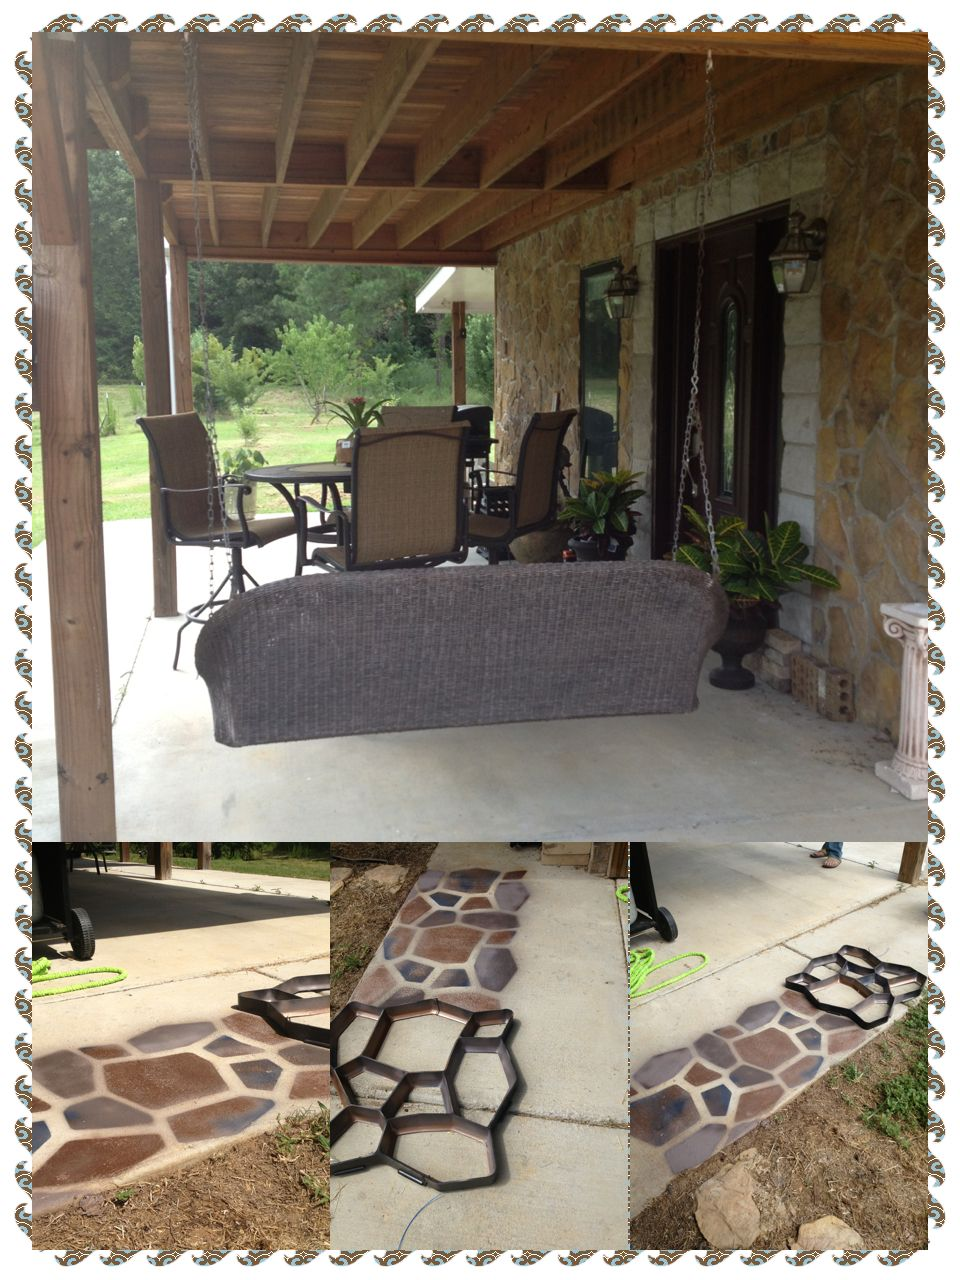 No Mess Stone Patio Floor! Use A Concrete Mold And Spray Paint To Make Your